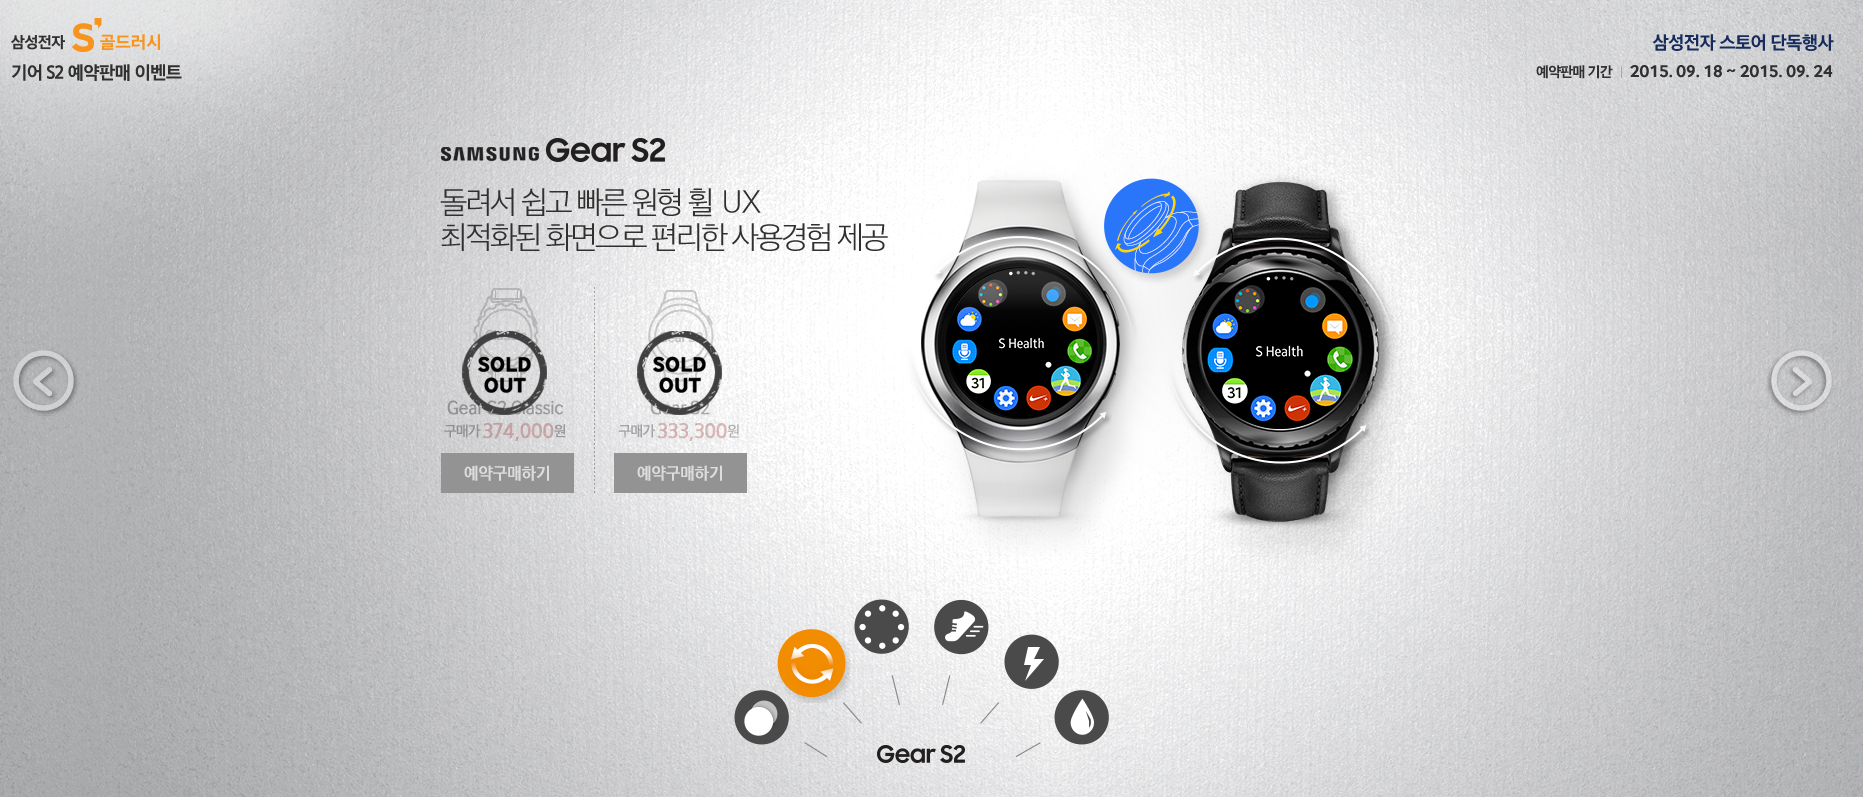 Samsung Gear S2 Gold Rush Book Sale Preorders